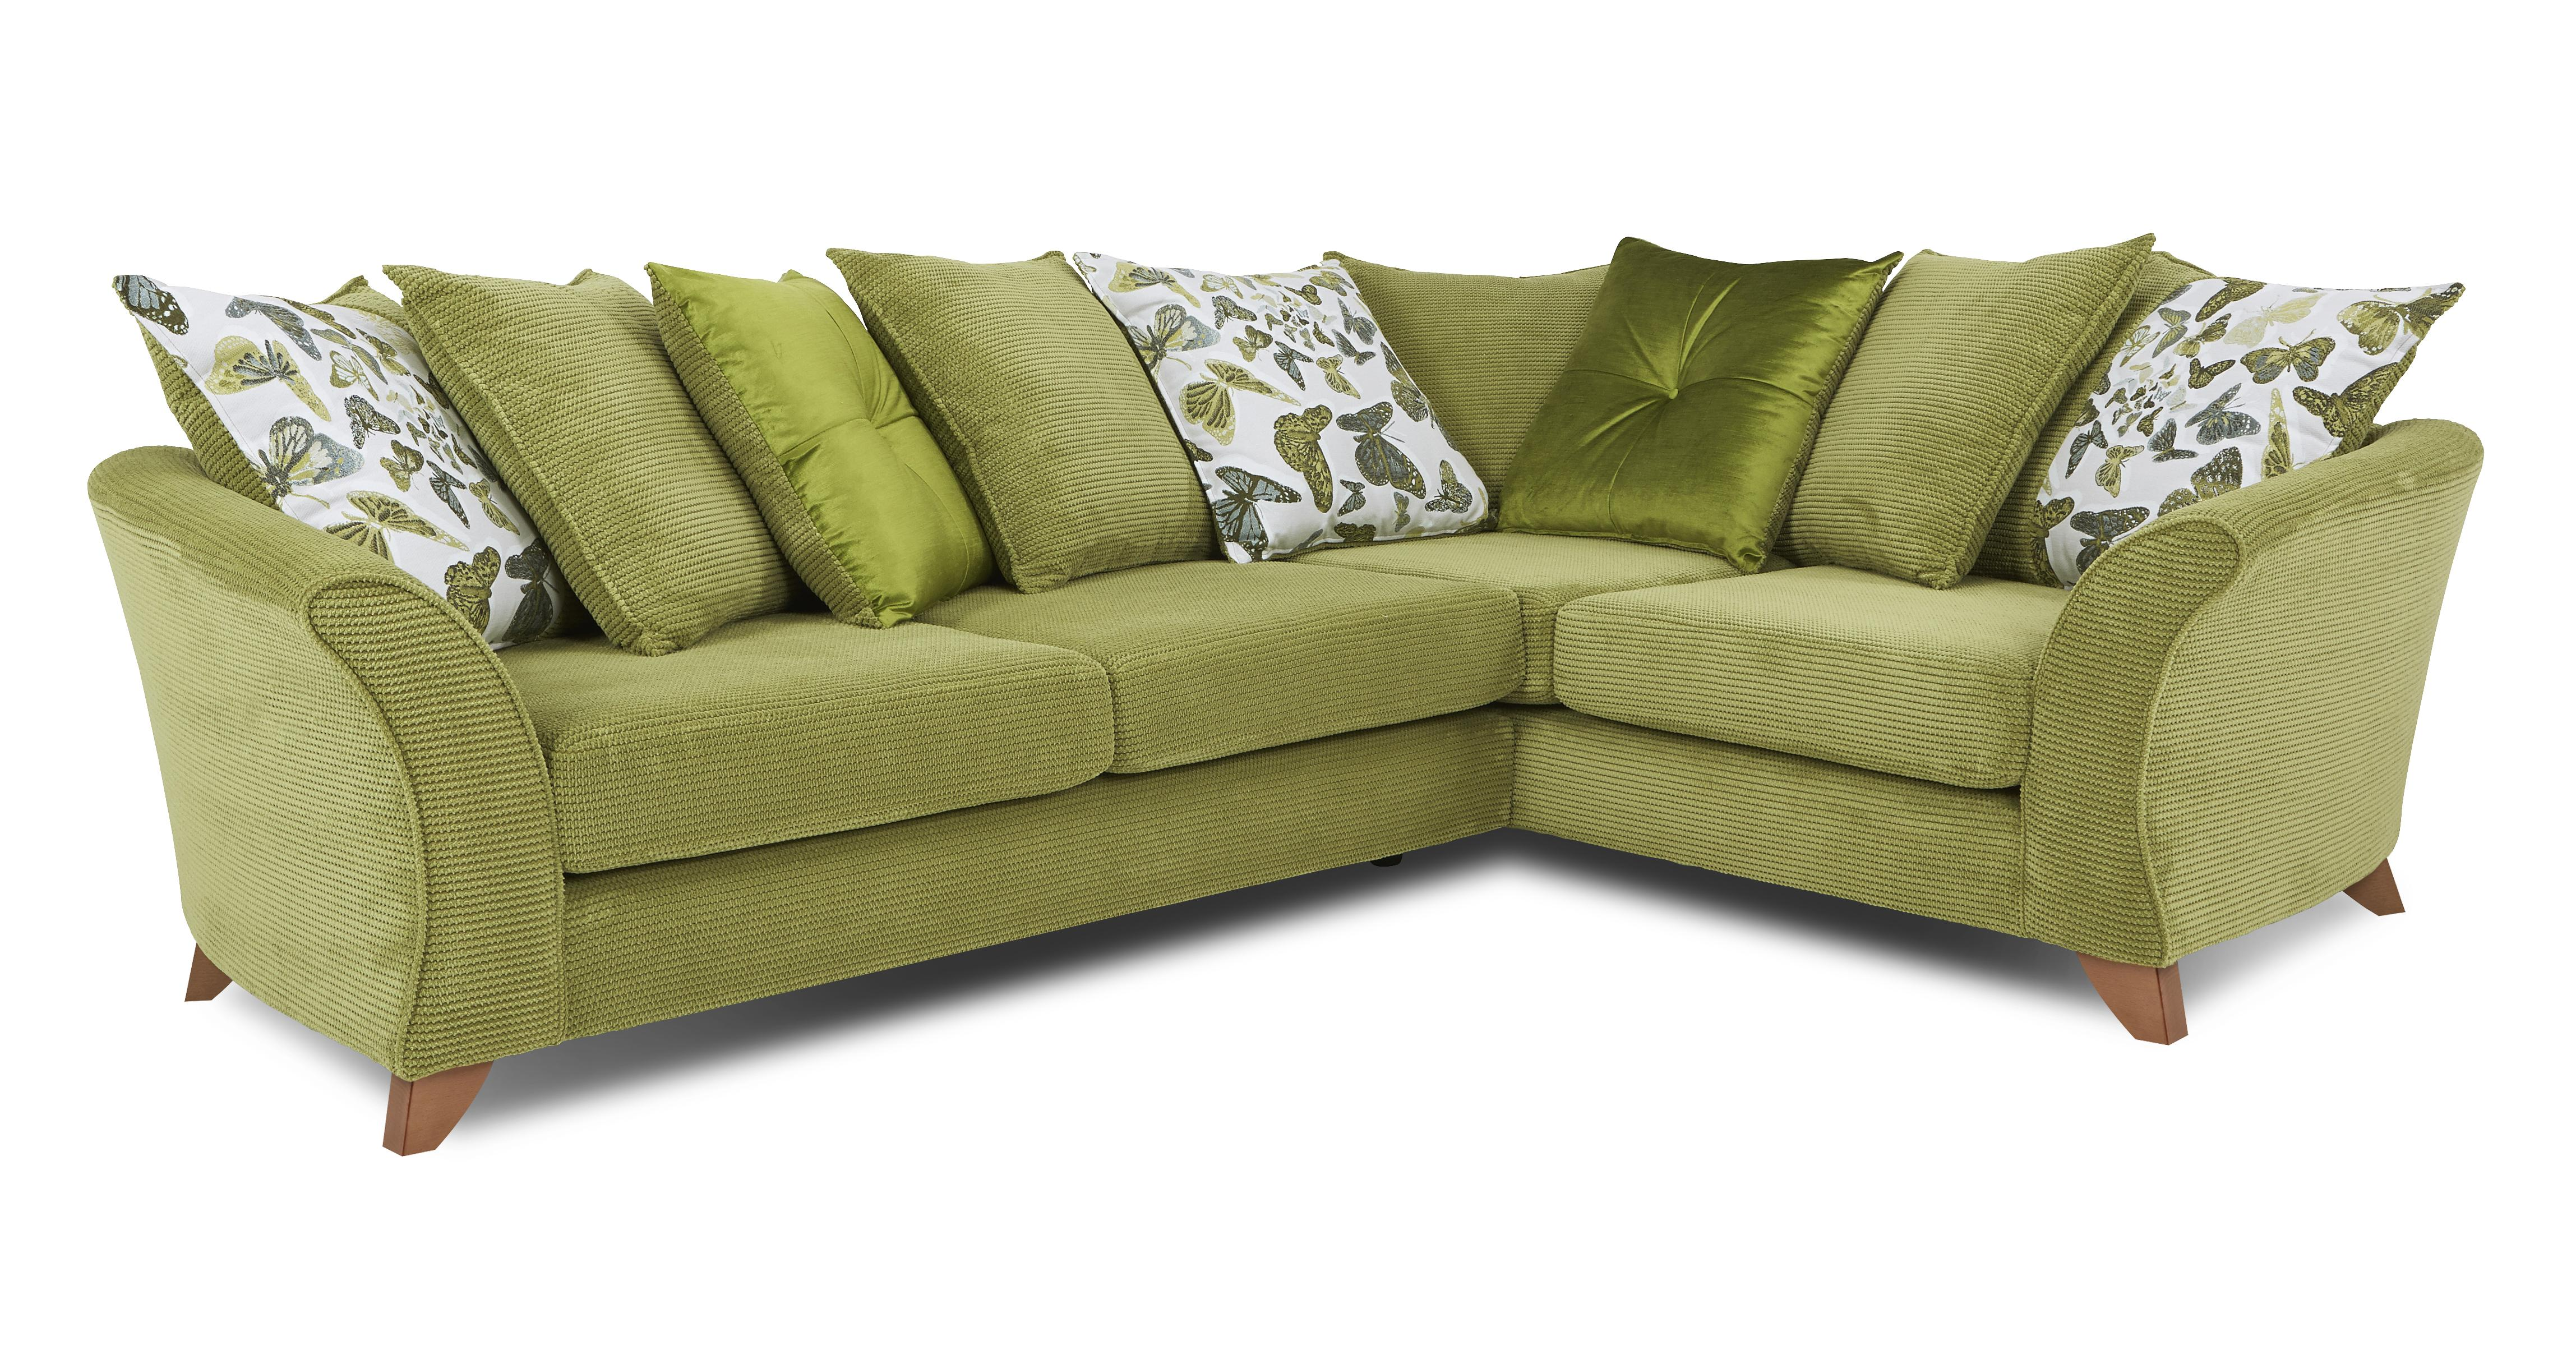 green leather corner sofa bed recliners microfiber lime sofas gradschoolfairs